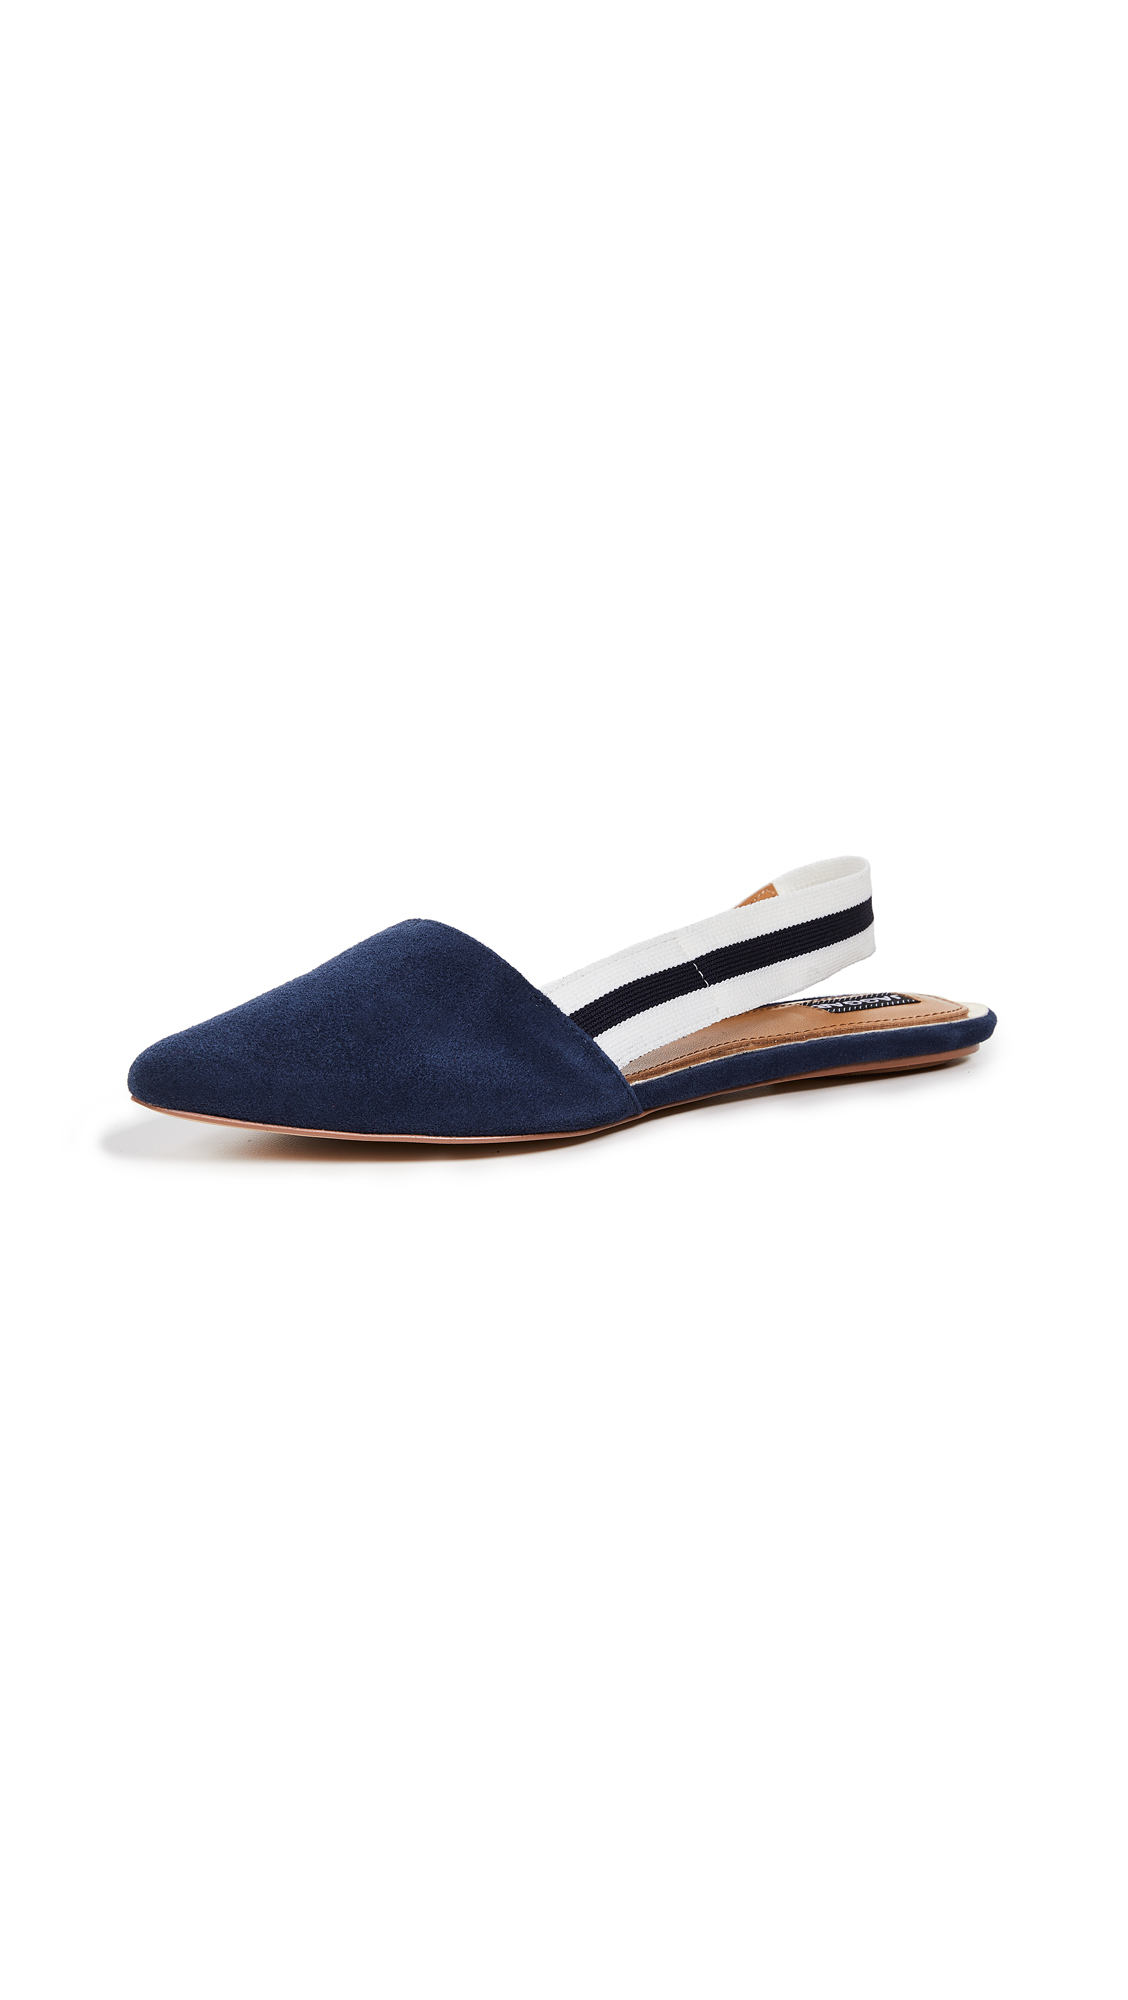 JAGGAR Action Suede Slingback Flats - Navy